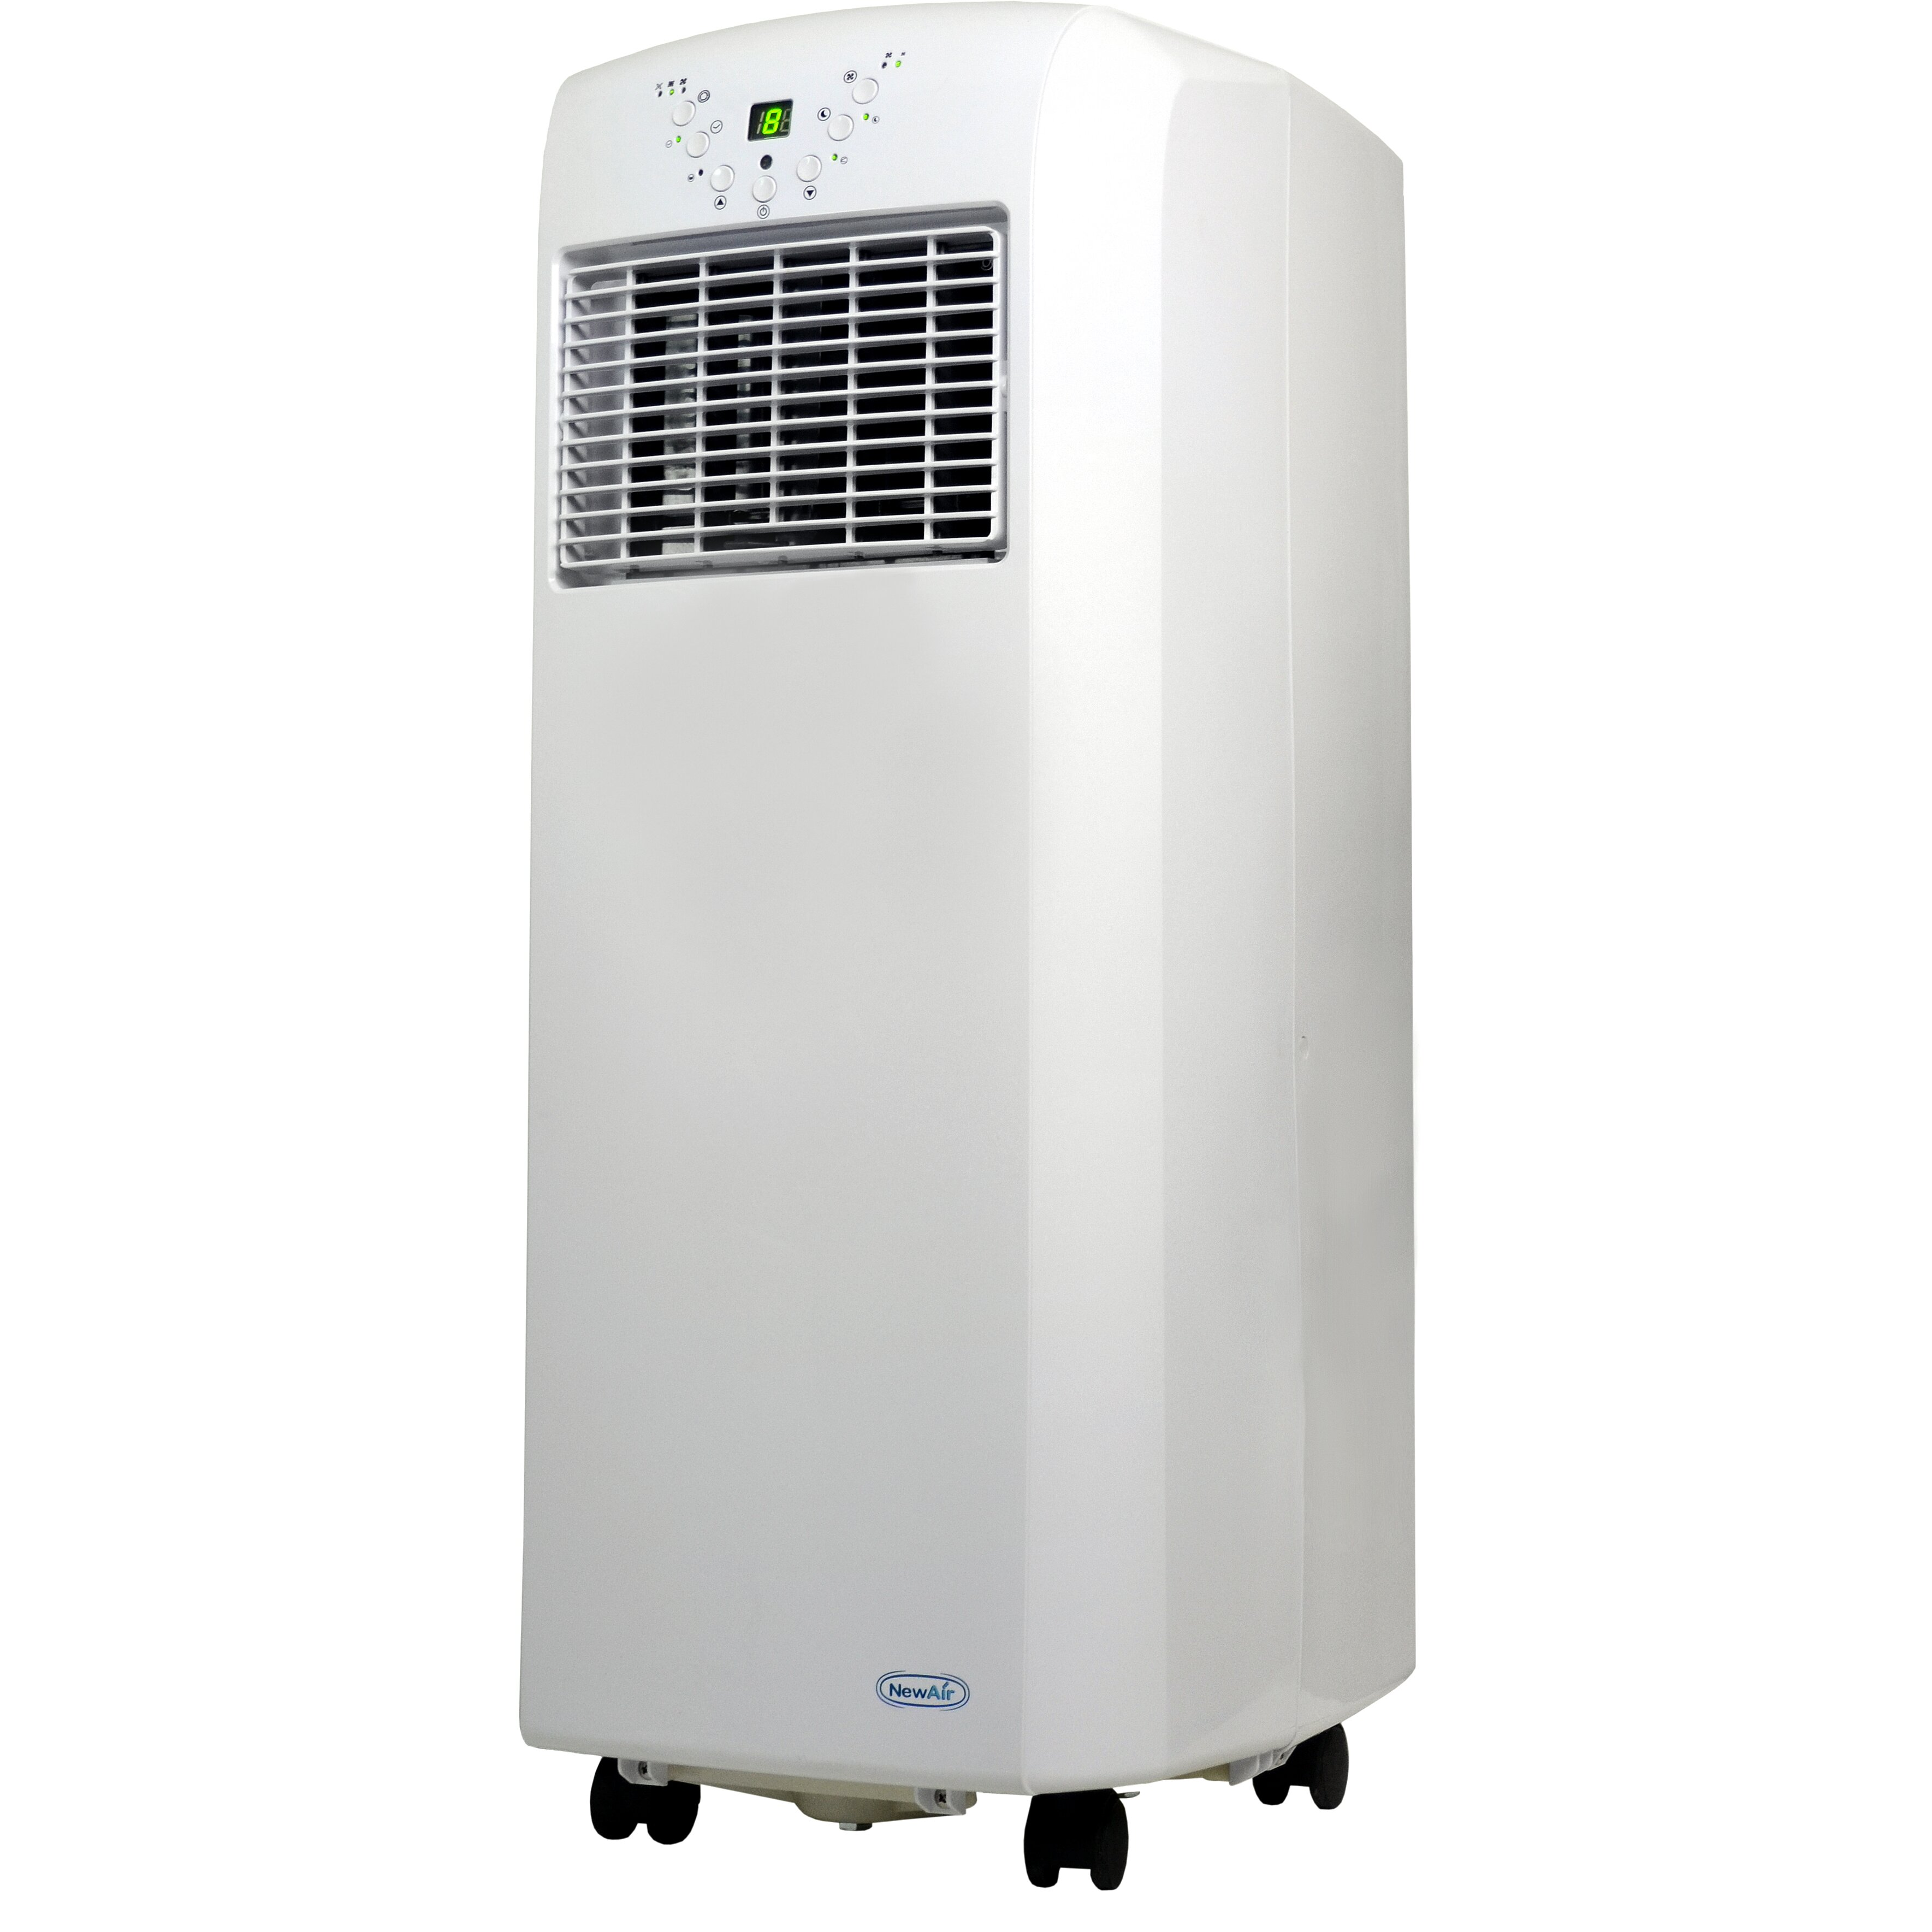 #61614B NewAir Ultra Compact 10 000 BTU Portable Air Conditioner  Highest Rated 13236 New Air Air Conditioner Portable img with 3538x3538 px on helpvideos.info - Air Conditioners, Air Coolers and more